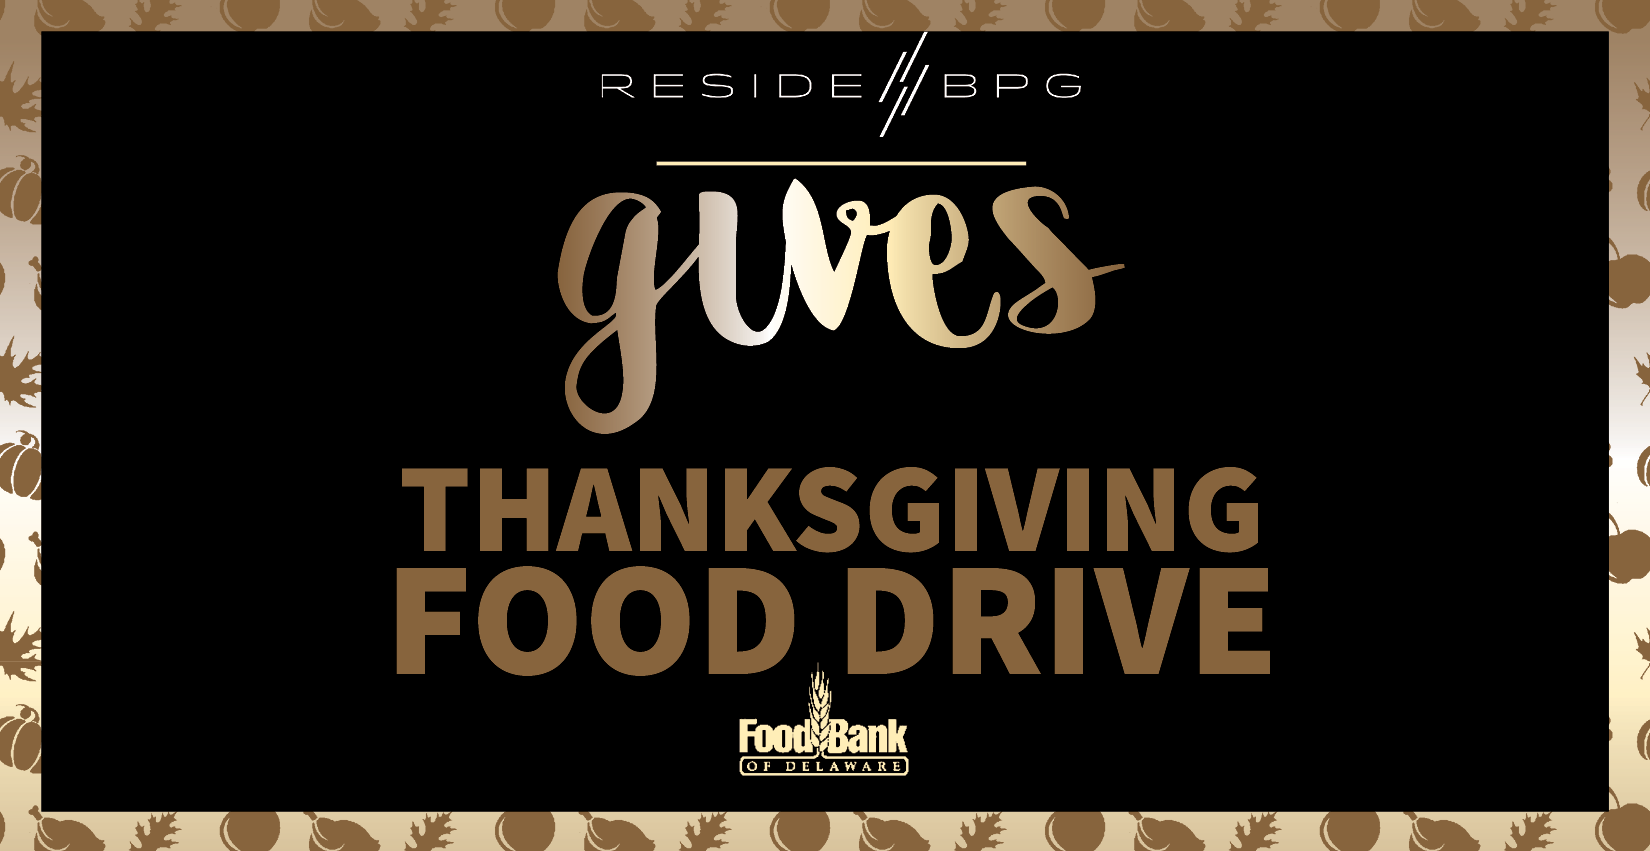 Support the Food Bank of Delaware: ResideBPG Hosts Annual Thanksgiving Food Drive